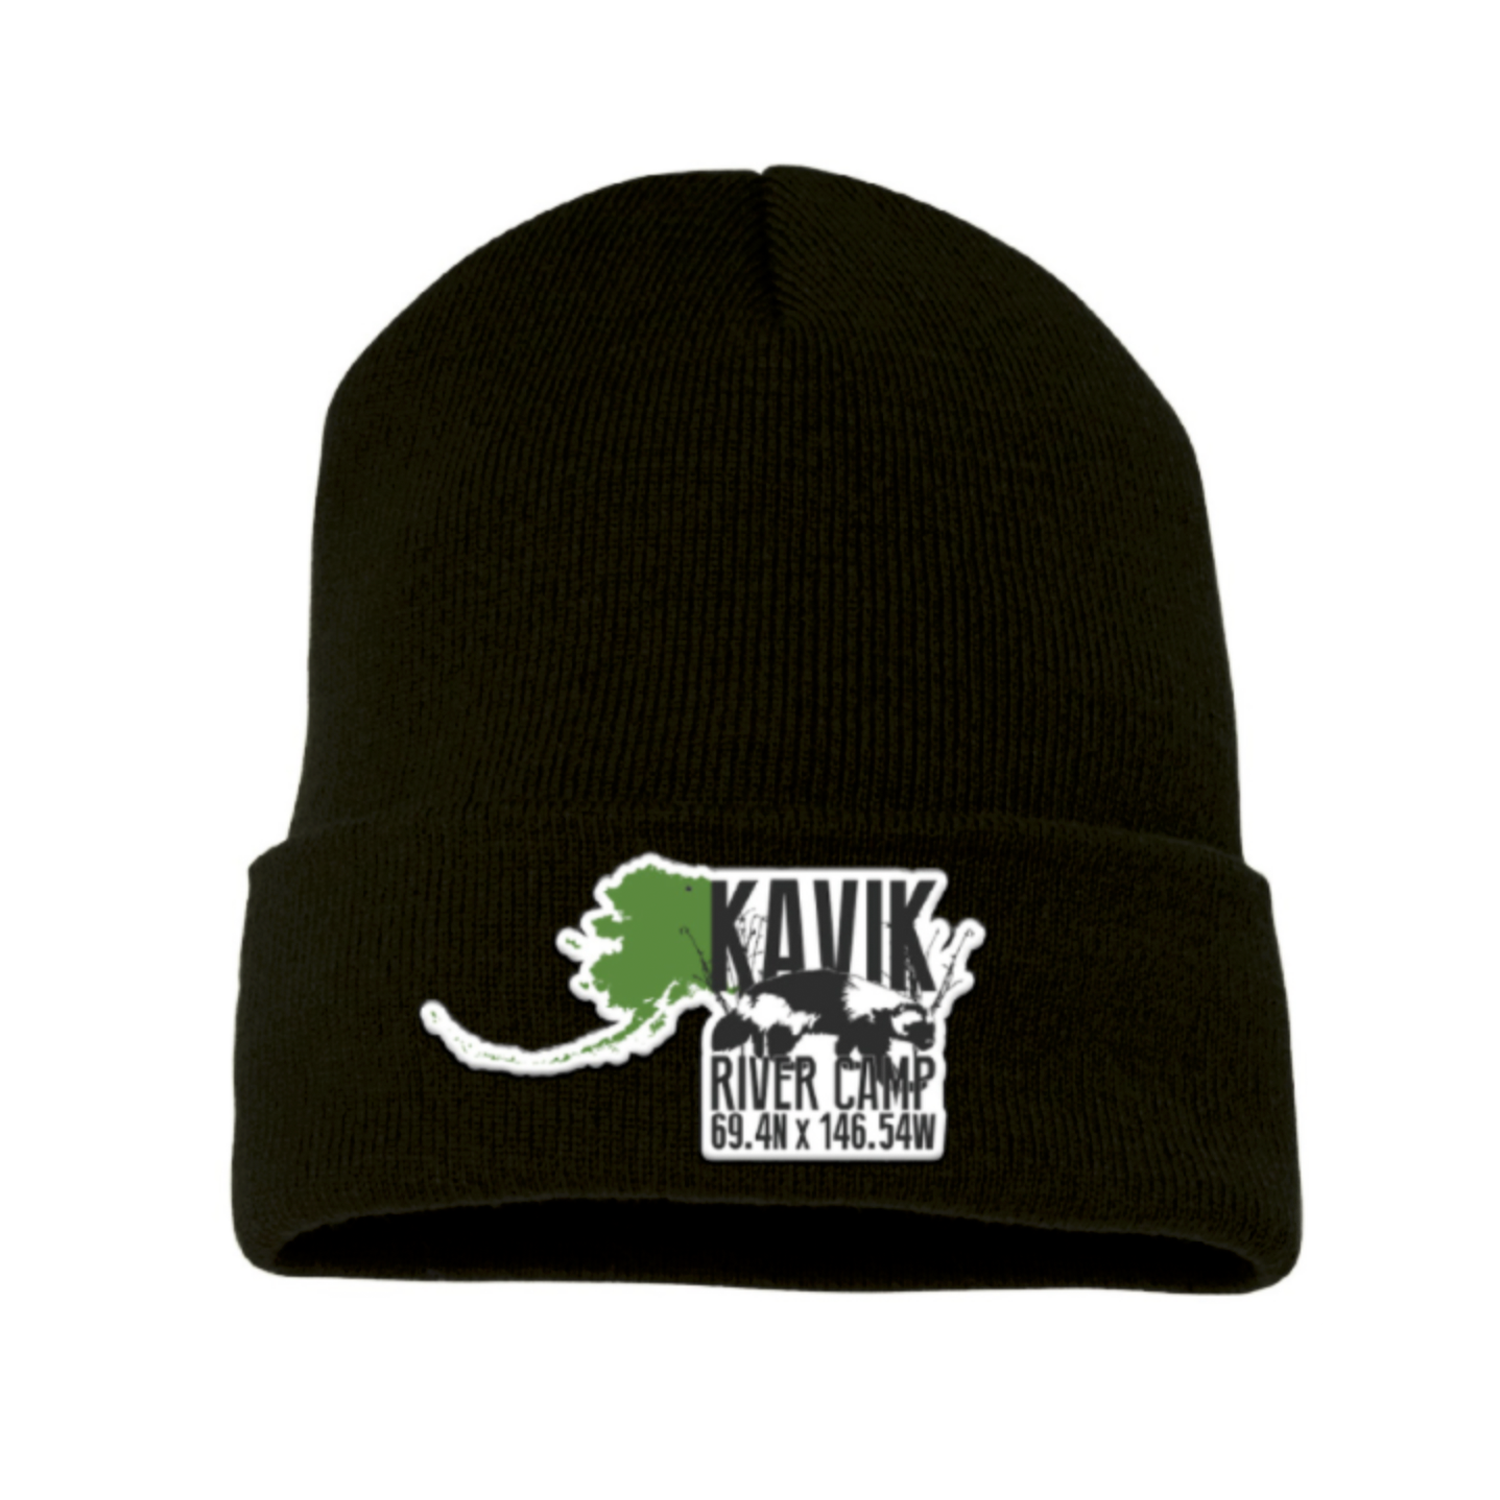 Kavik River Camp | Beanie - Black